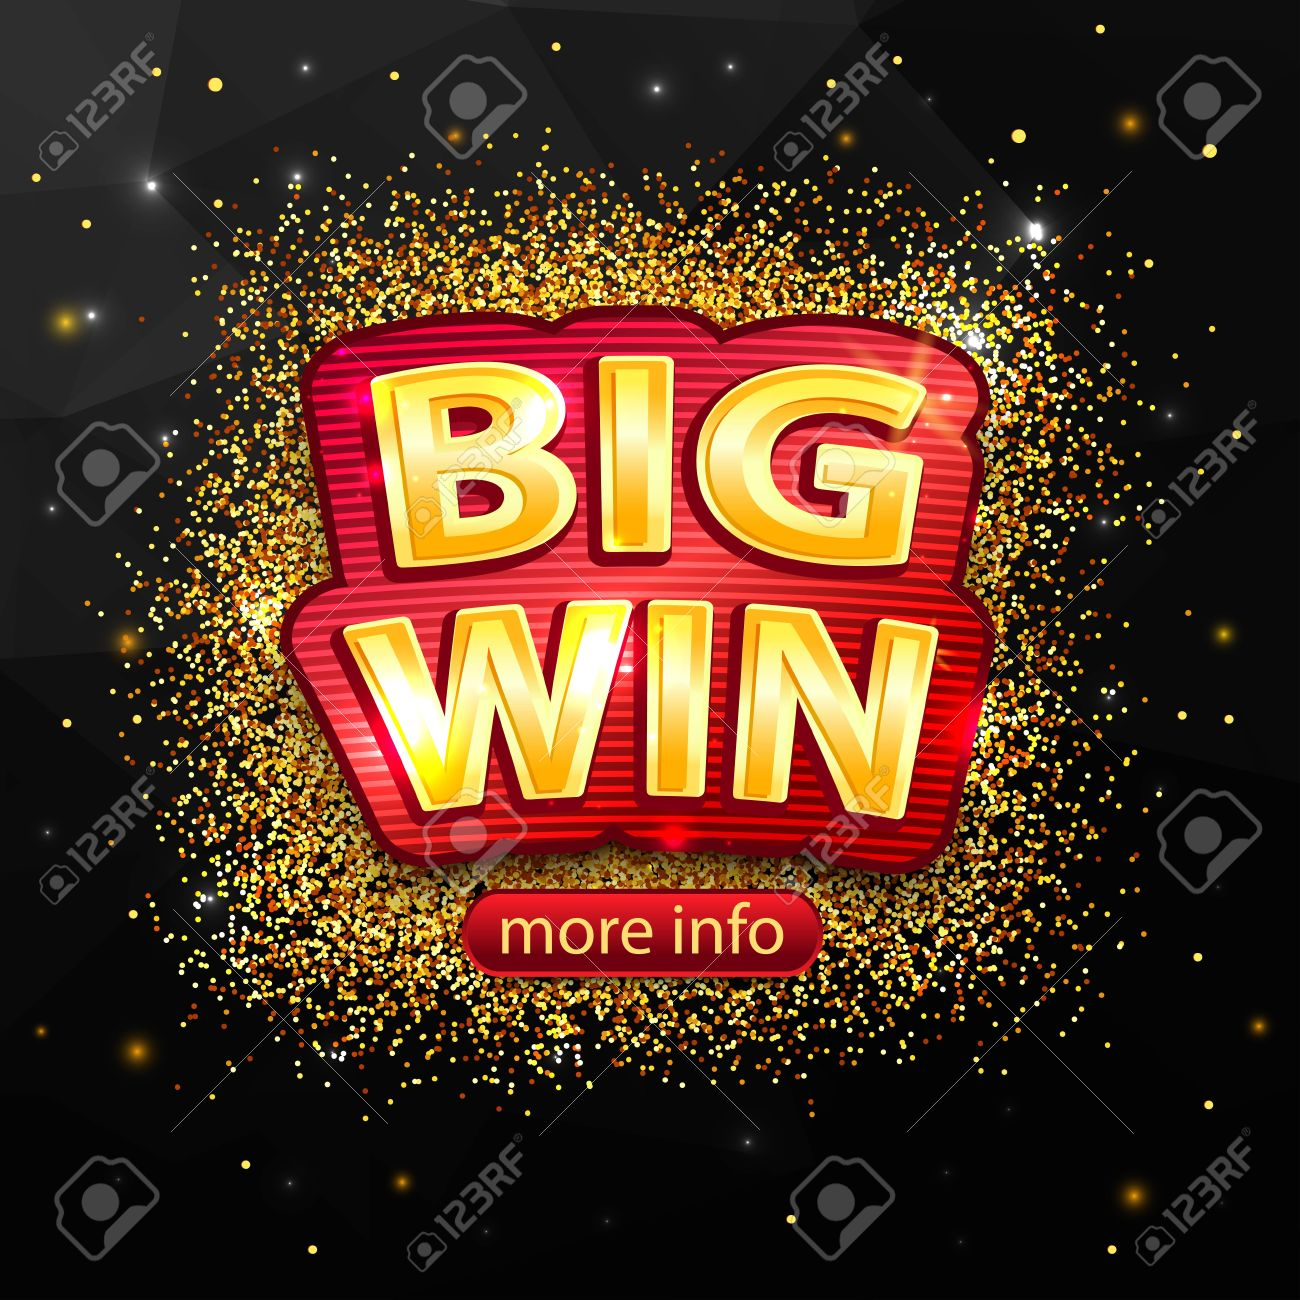 Big Win background for online casino, poker, roulette, slot machines, card games. Big Win banner. - 56891002